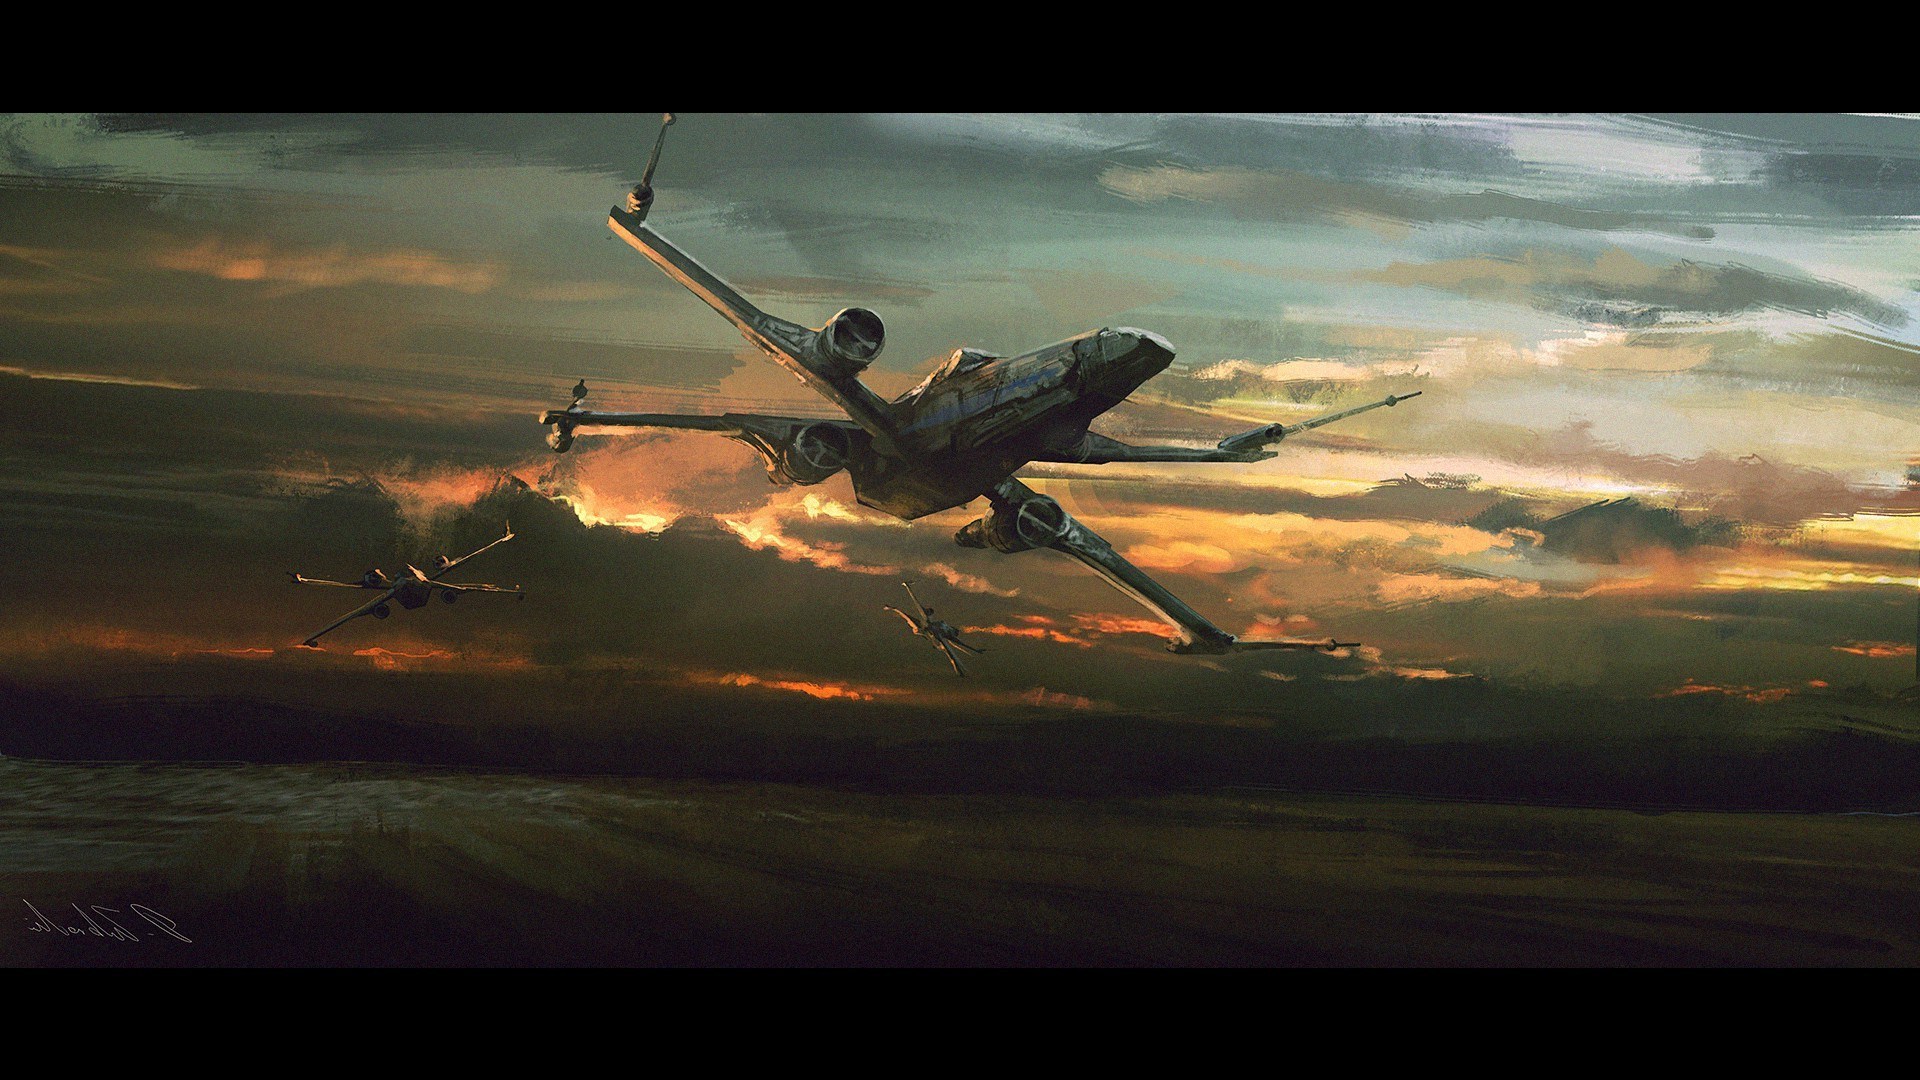 1920x1080 X Wing Wallpaper HD | HD Wallpapers | Pinterest | Wallpaper ...